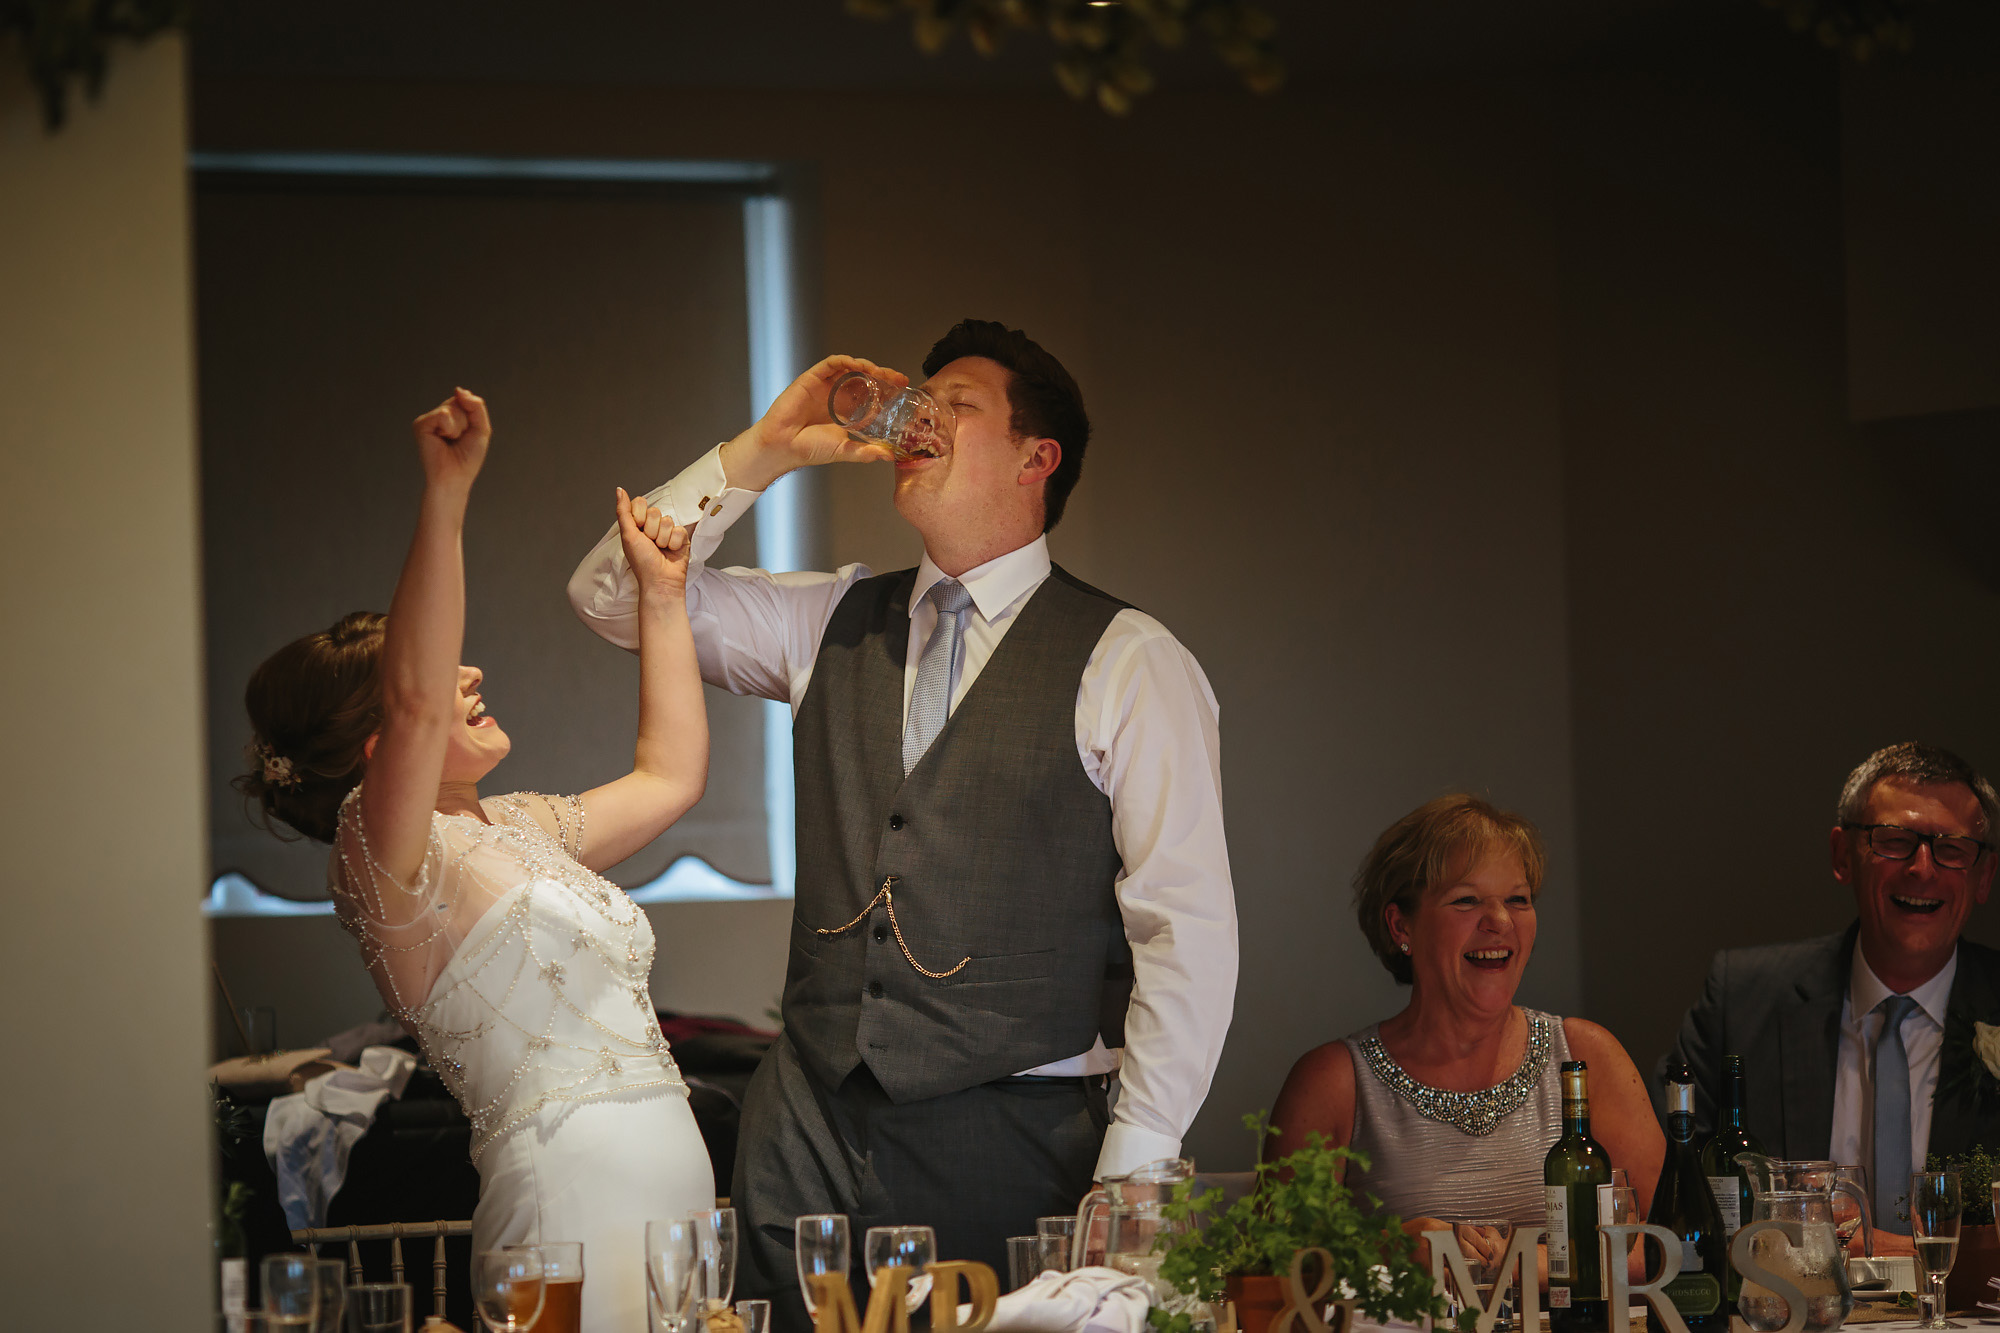 Groom drink a pint and his wife celebrates at a village hall wedding